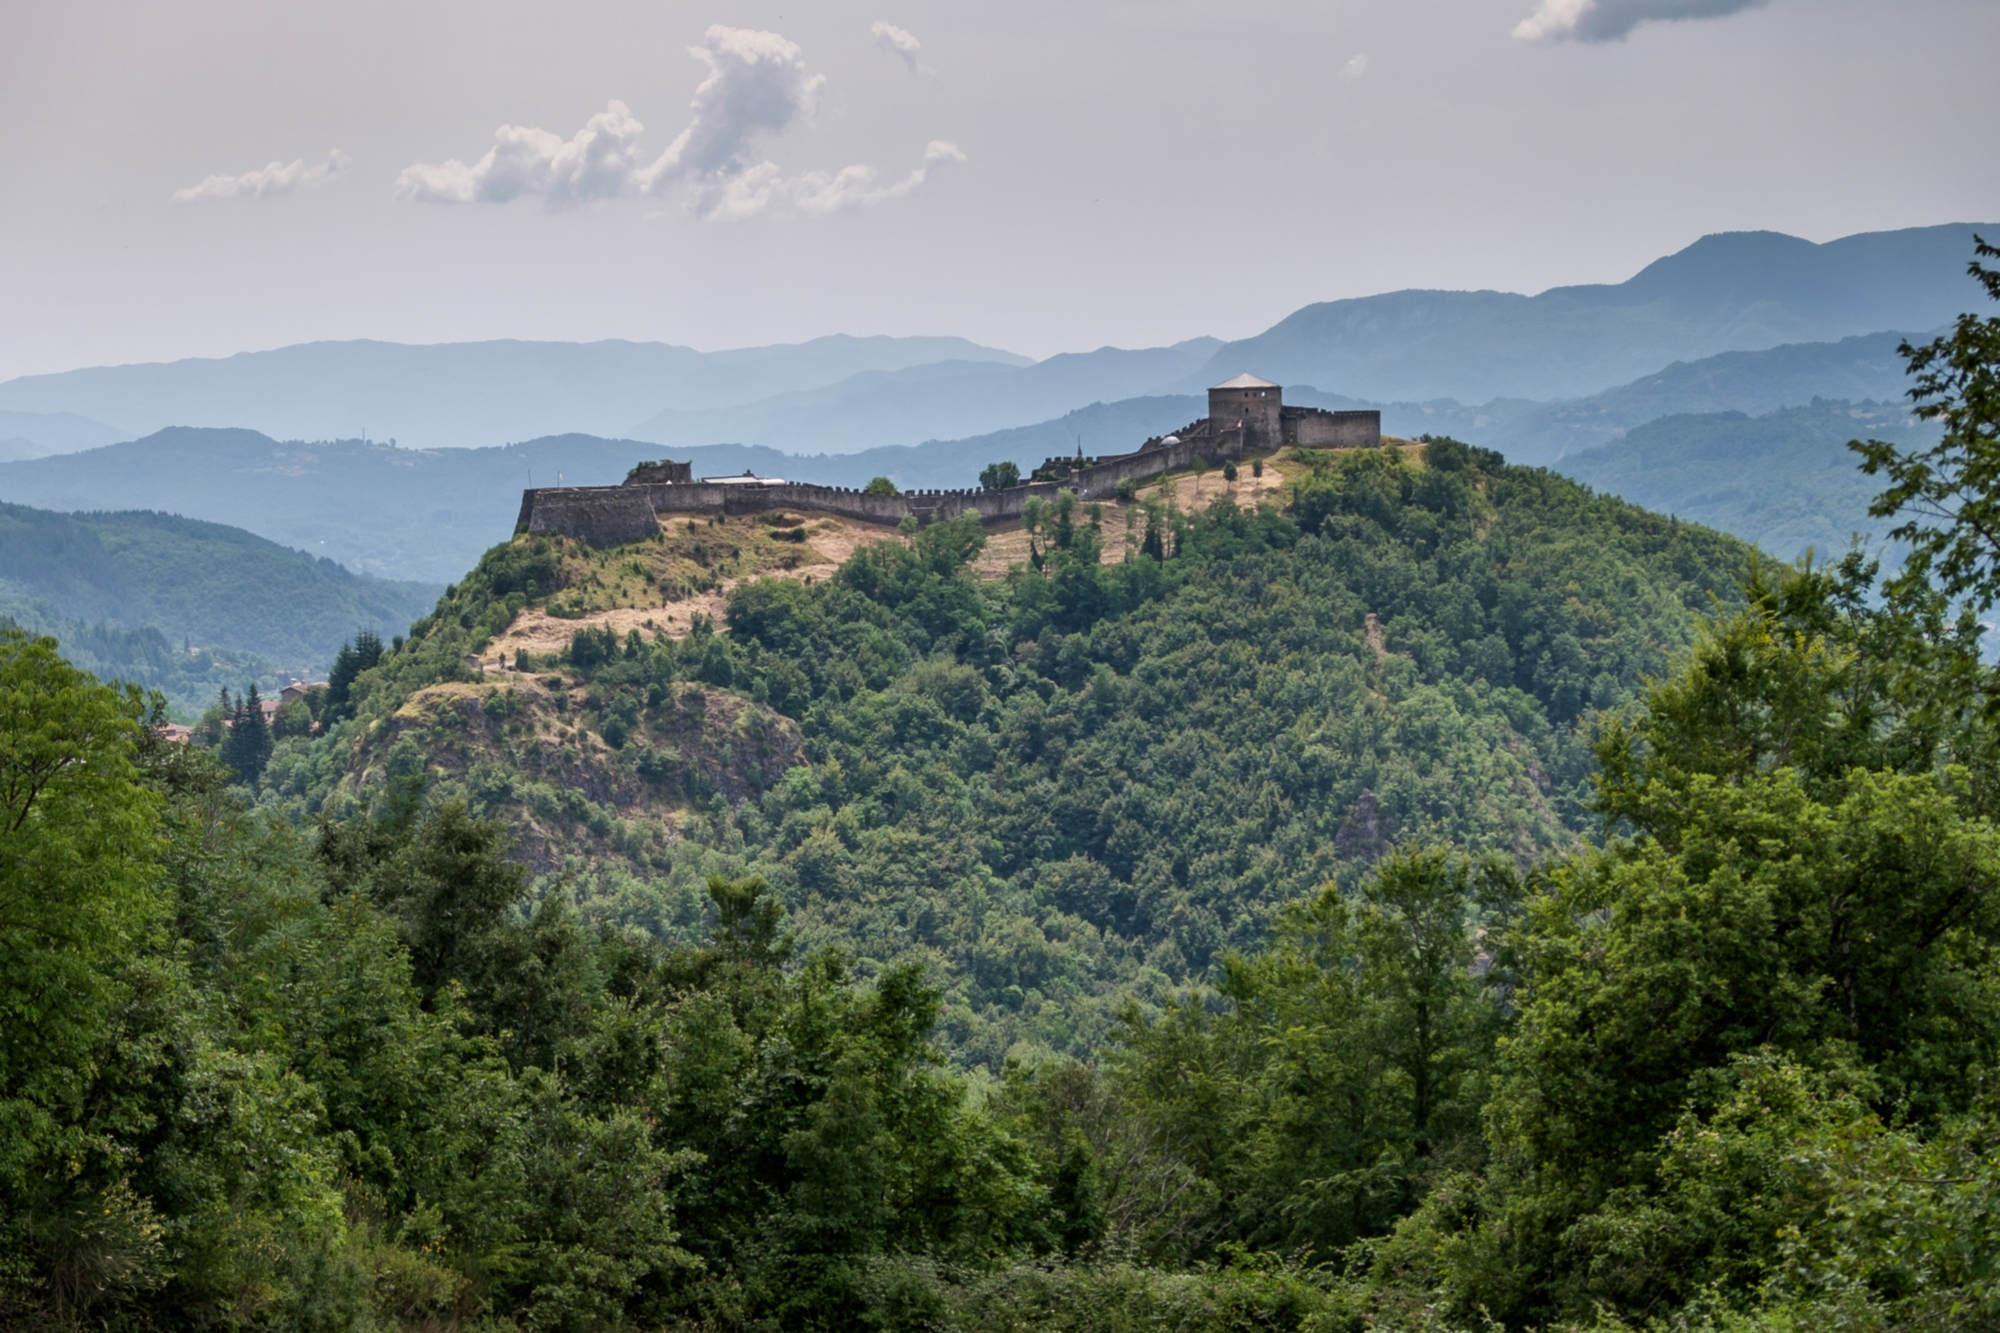 Garfagnana, the wild side of Tuscany - Magazine cover